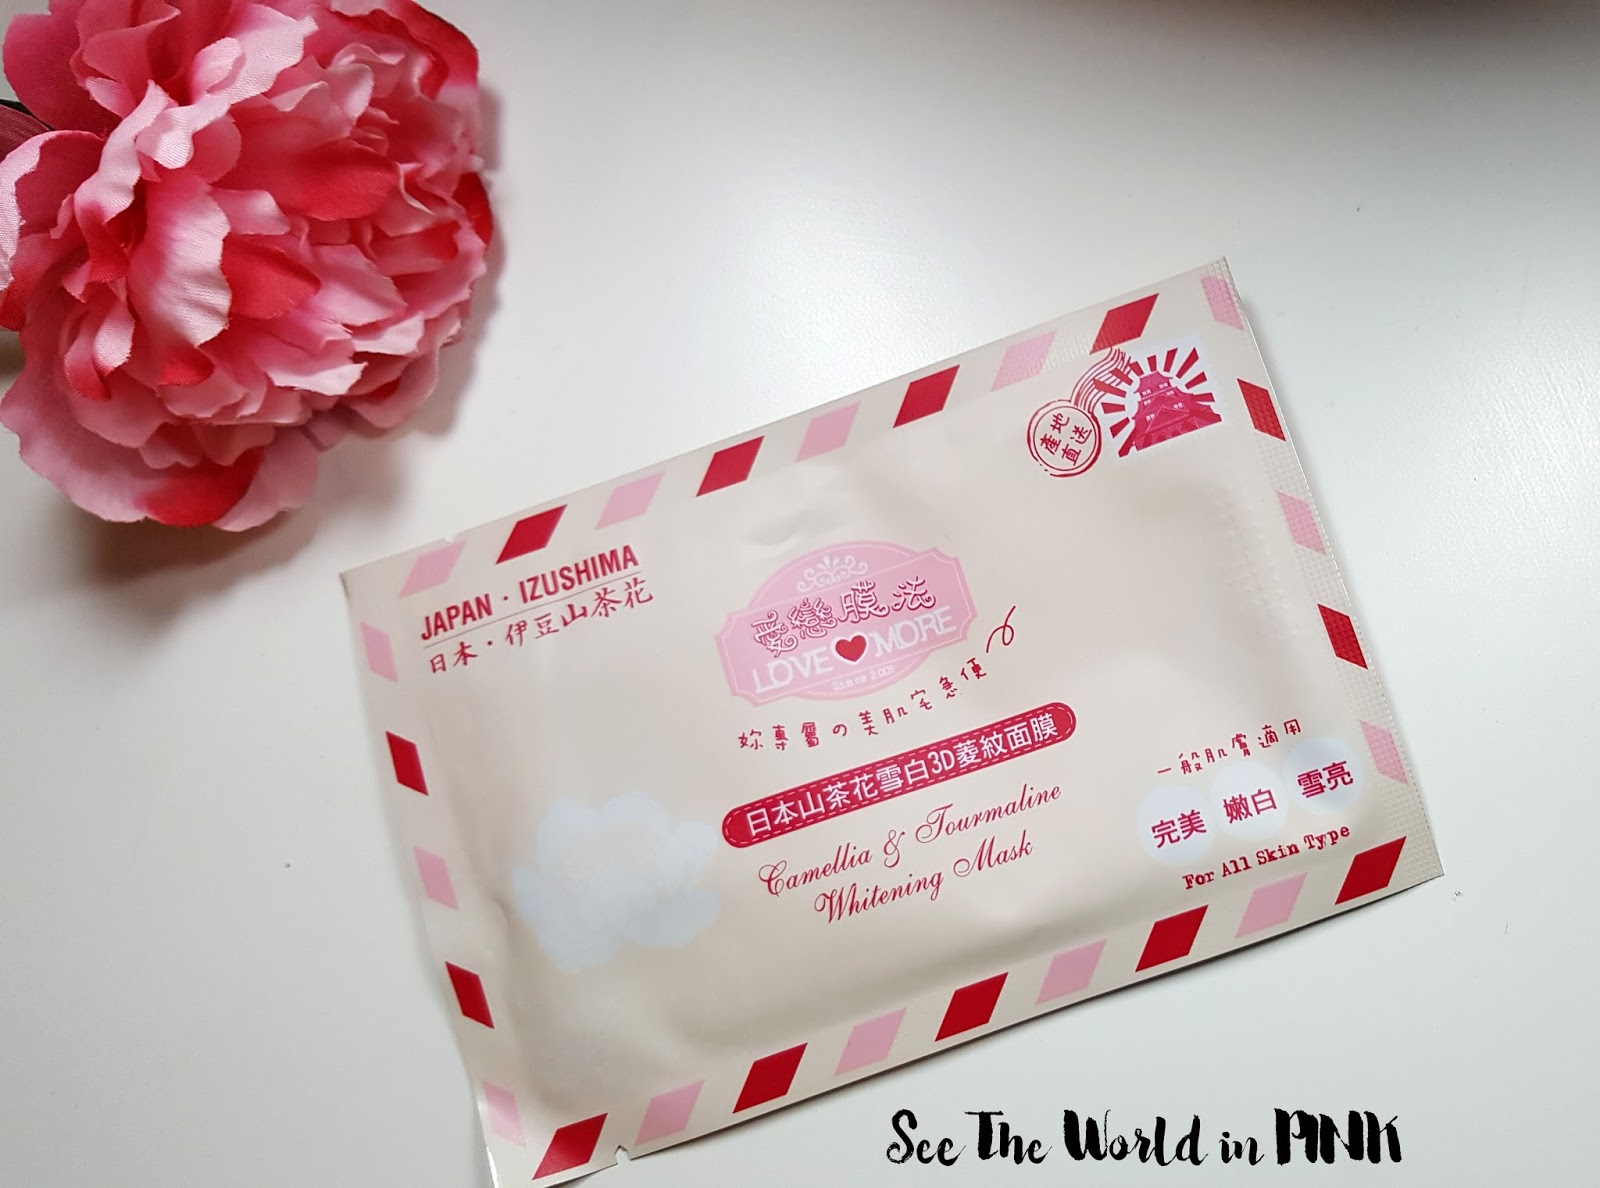 Mask Wednesday - Lovemore Camellia & Tourmaline Whitening Mask Review